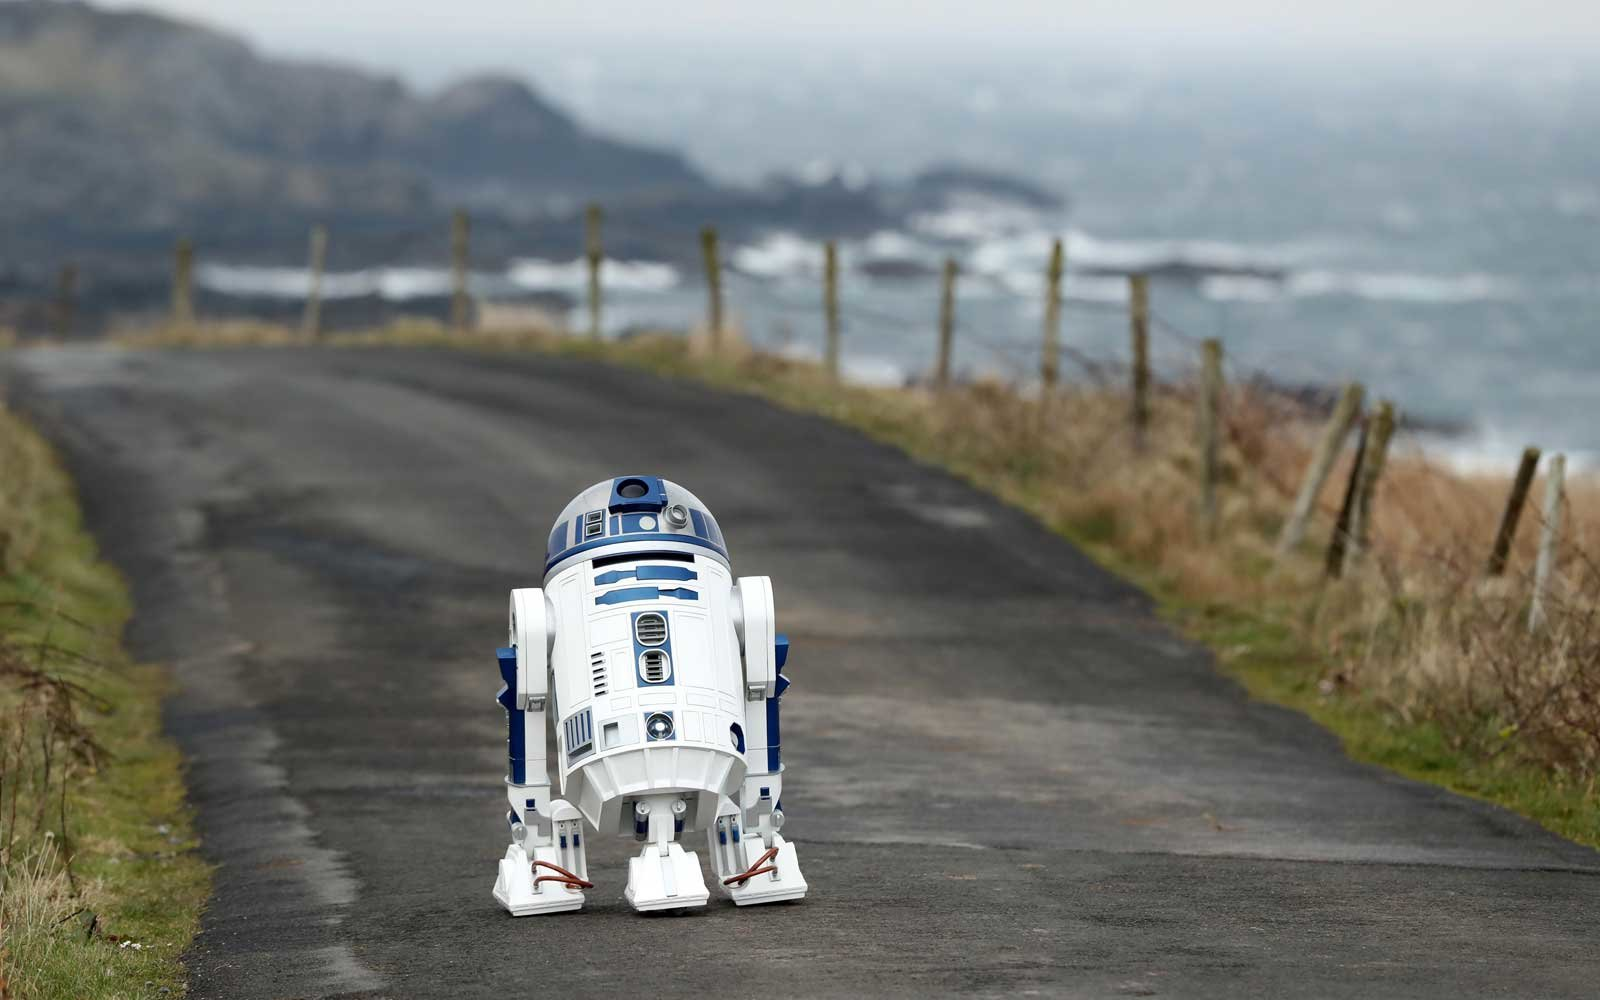 The Force Is With This Irish Town That Renamed Its Road After R2-D2